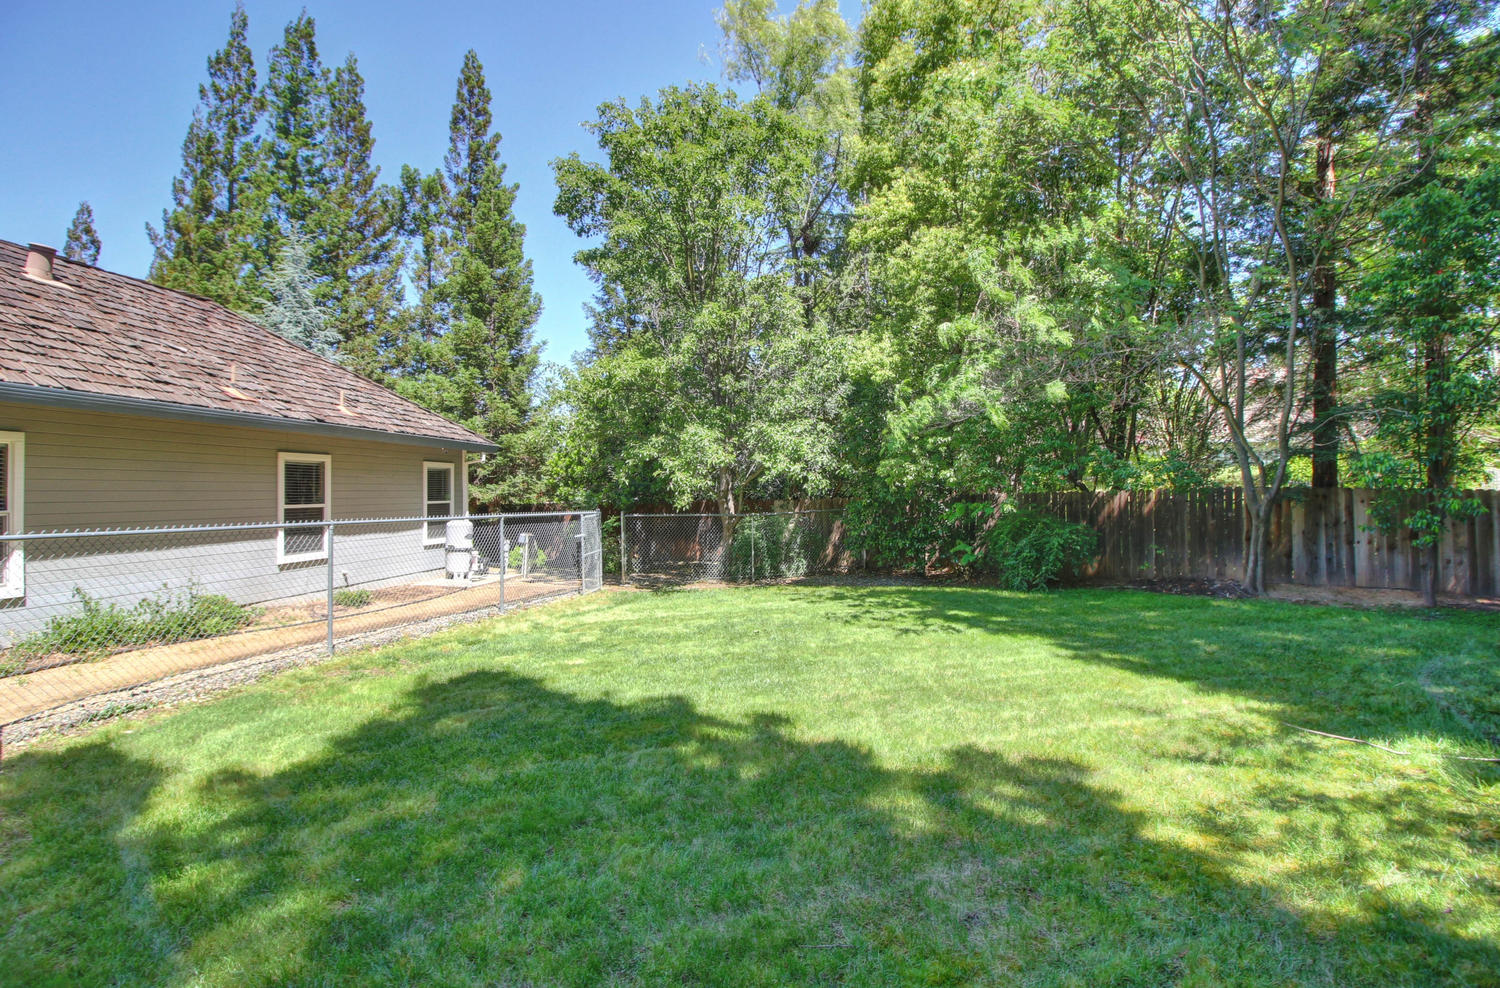 3594 Old Country Ct Roseville-large-041-41-41-1500x988-72dpi